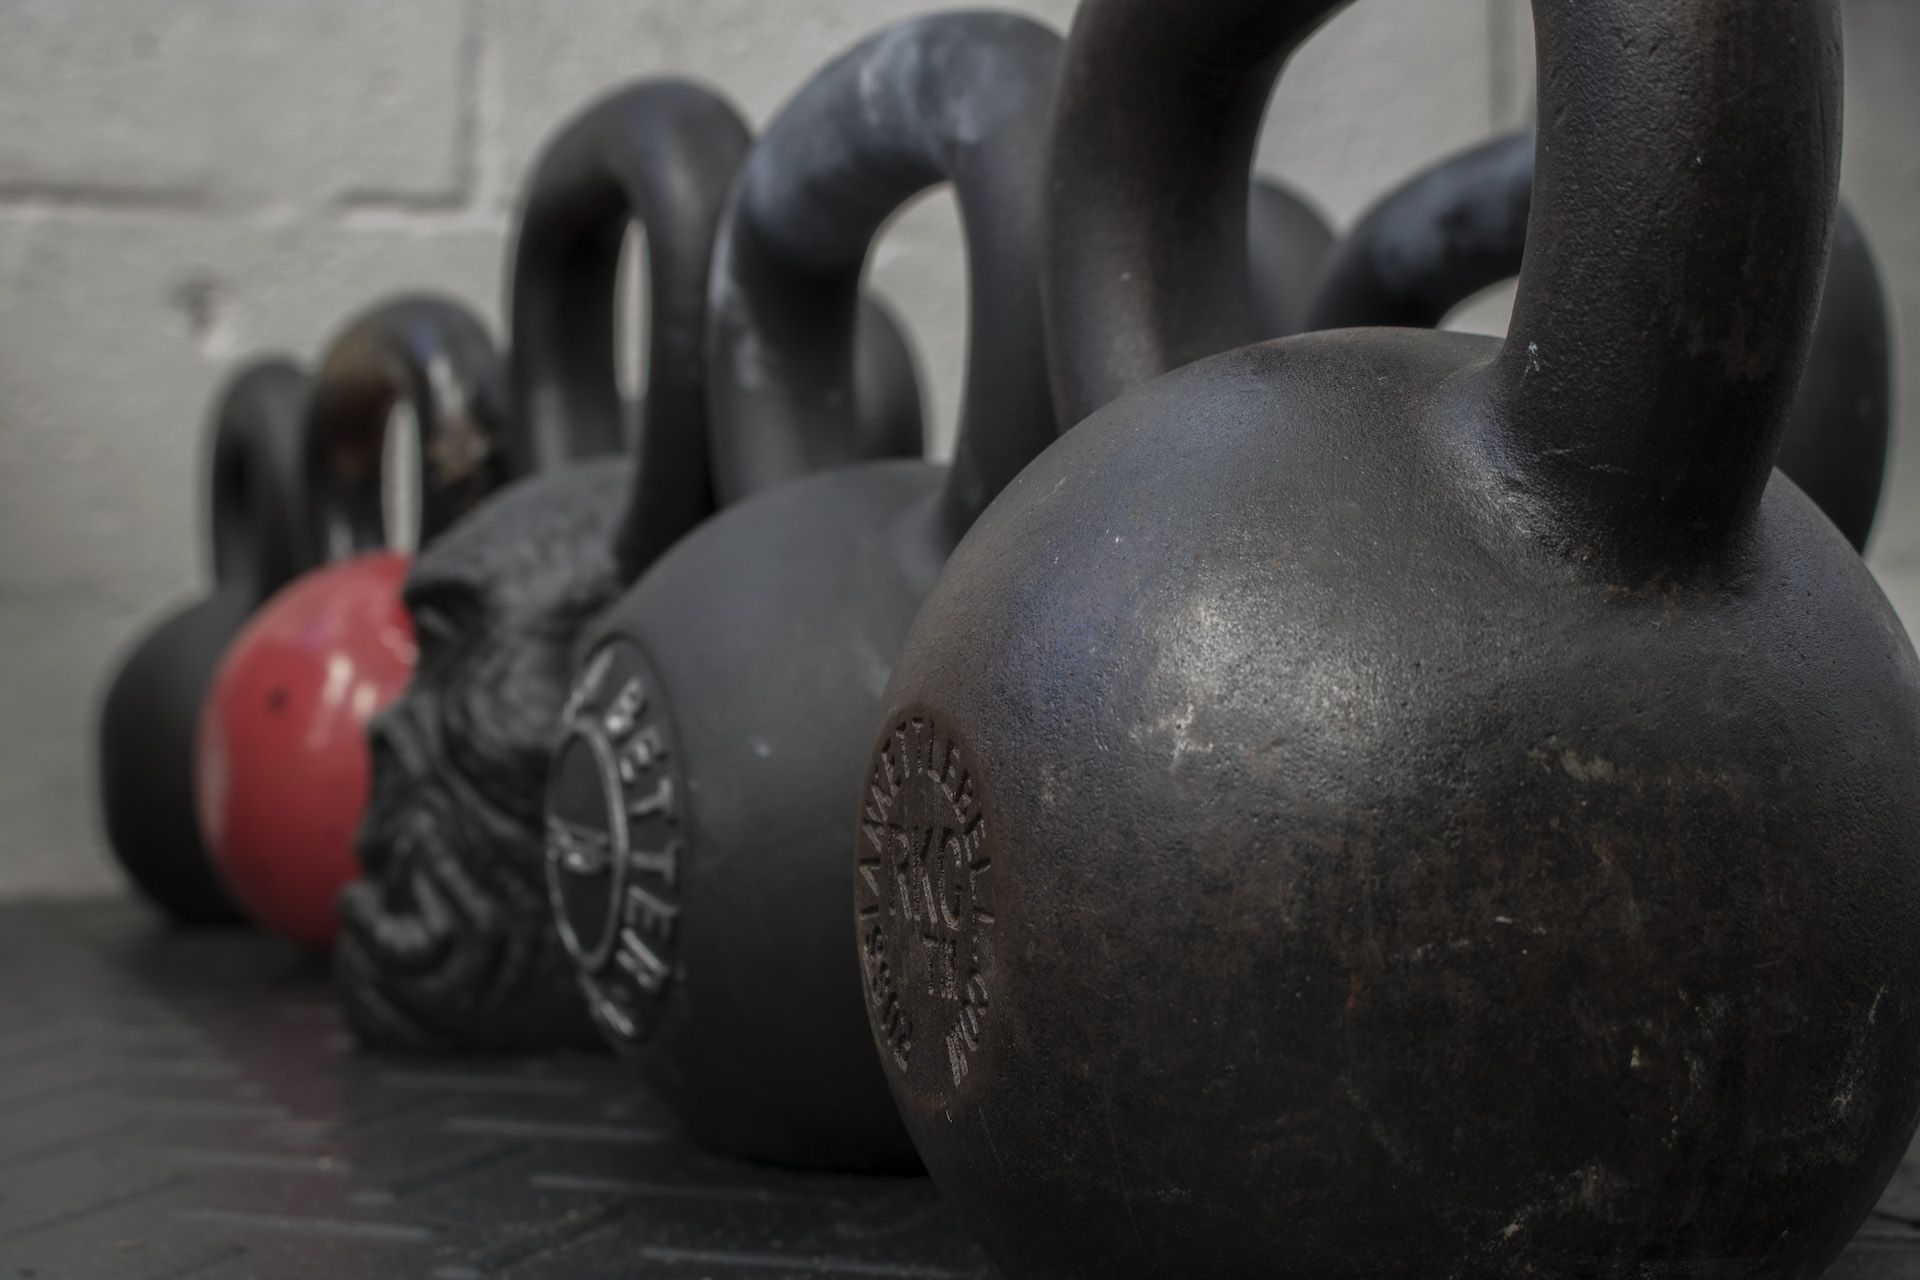 Kettlebells for your home gym: Bang for your buck recommendations